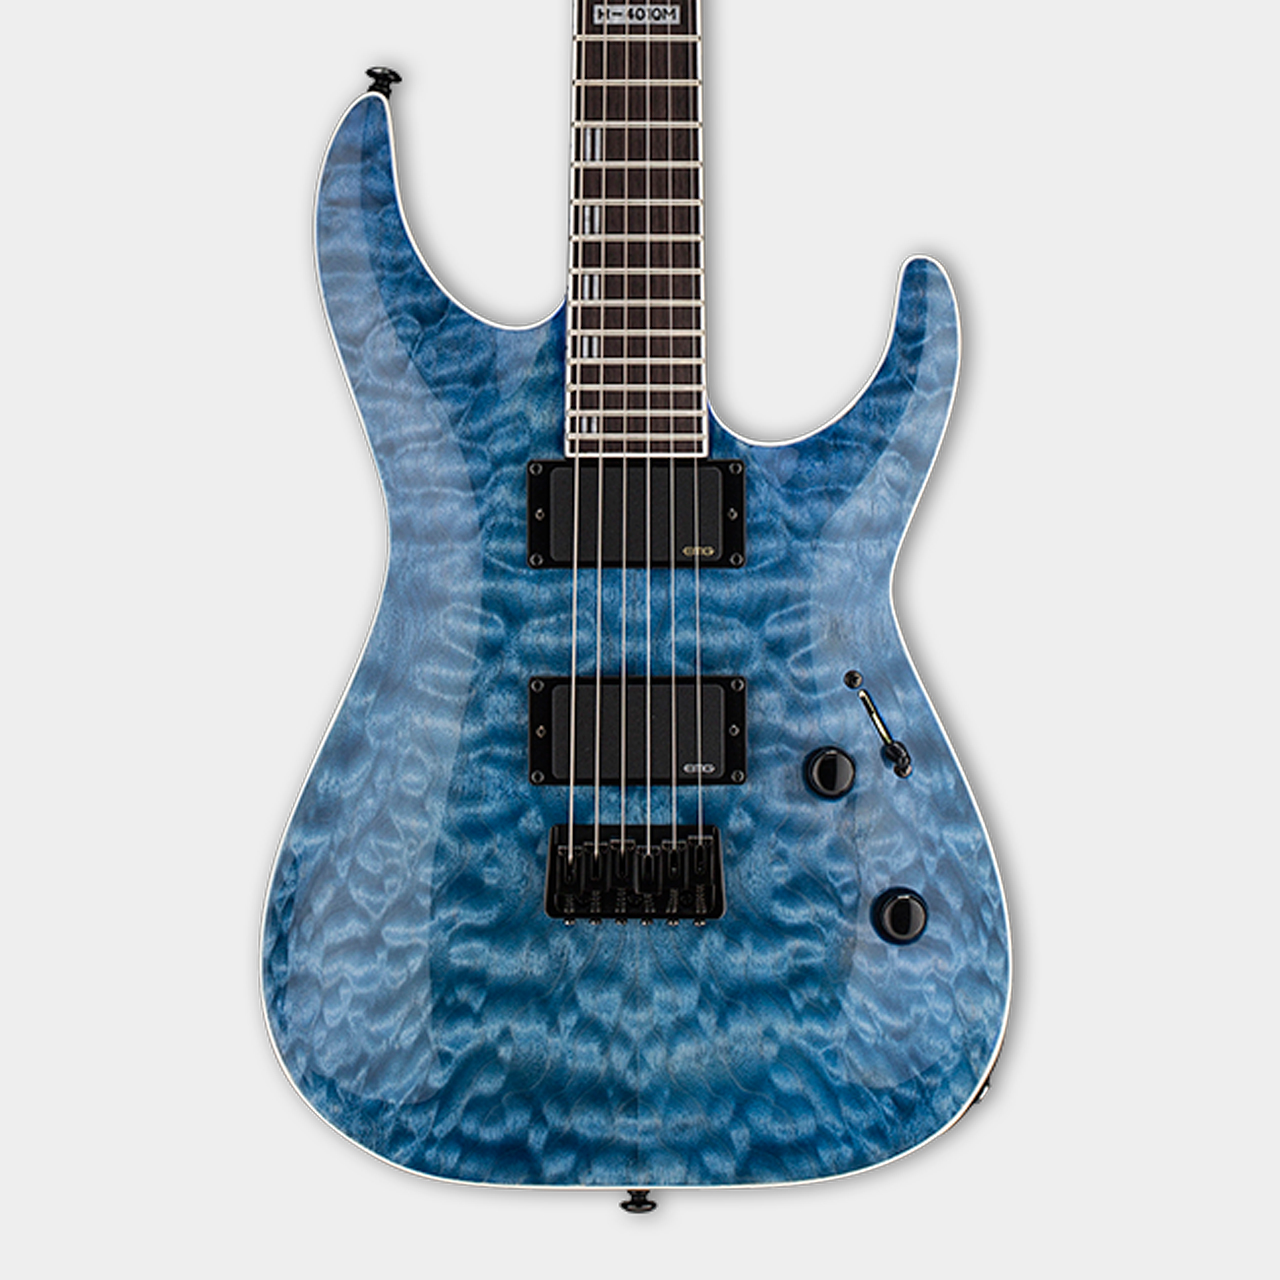 ESP LTD H401QM Faded Sky Blue Body